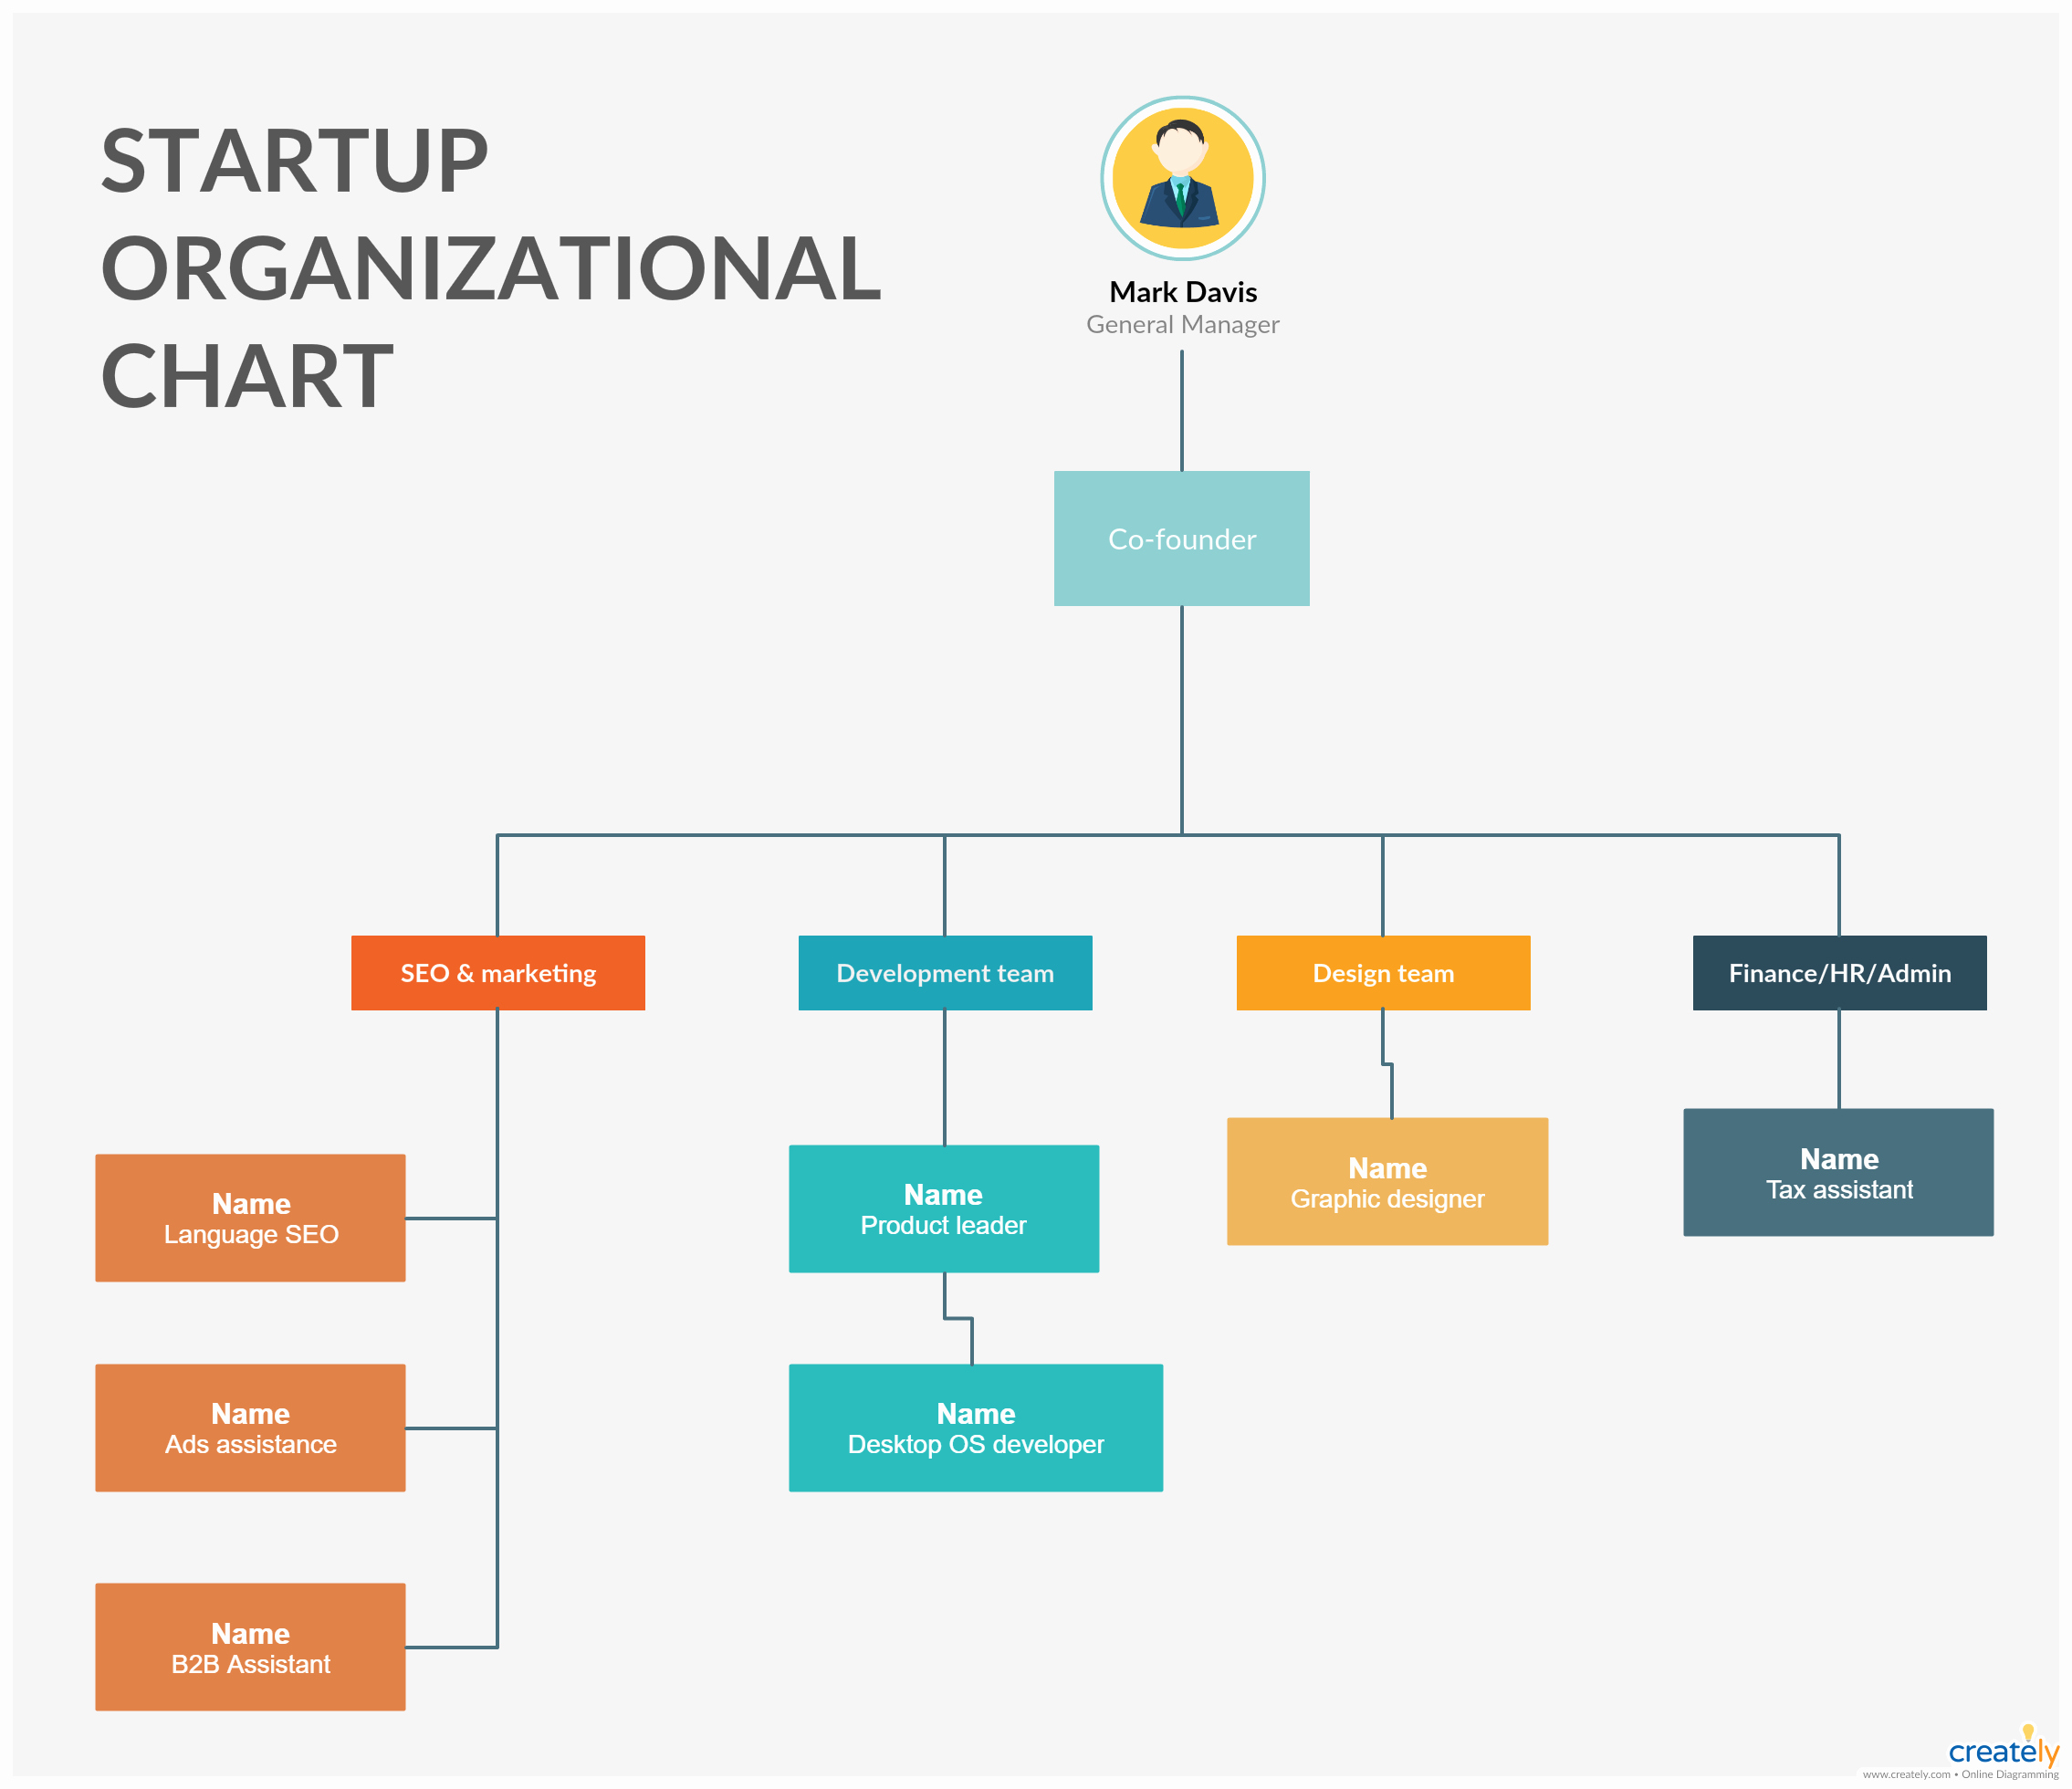 Fire Department organizational Chart Template Fresh Startup organizational Chart Template Editable org Chart